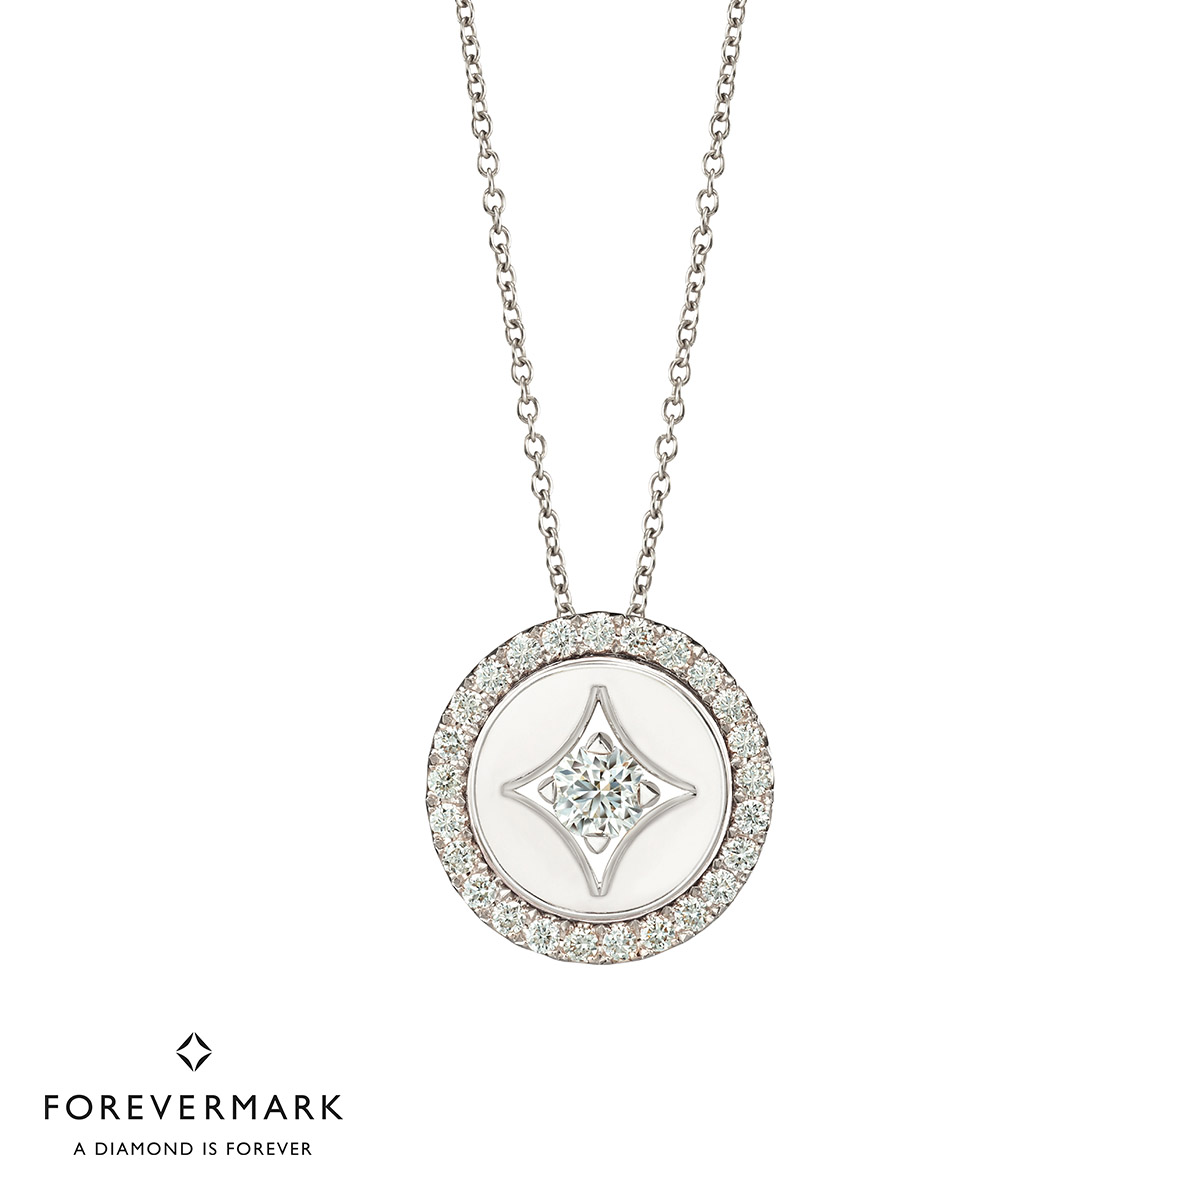 FM Bliss necklace - WG 1